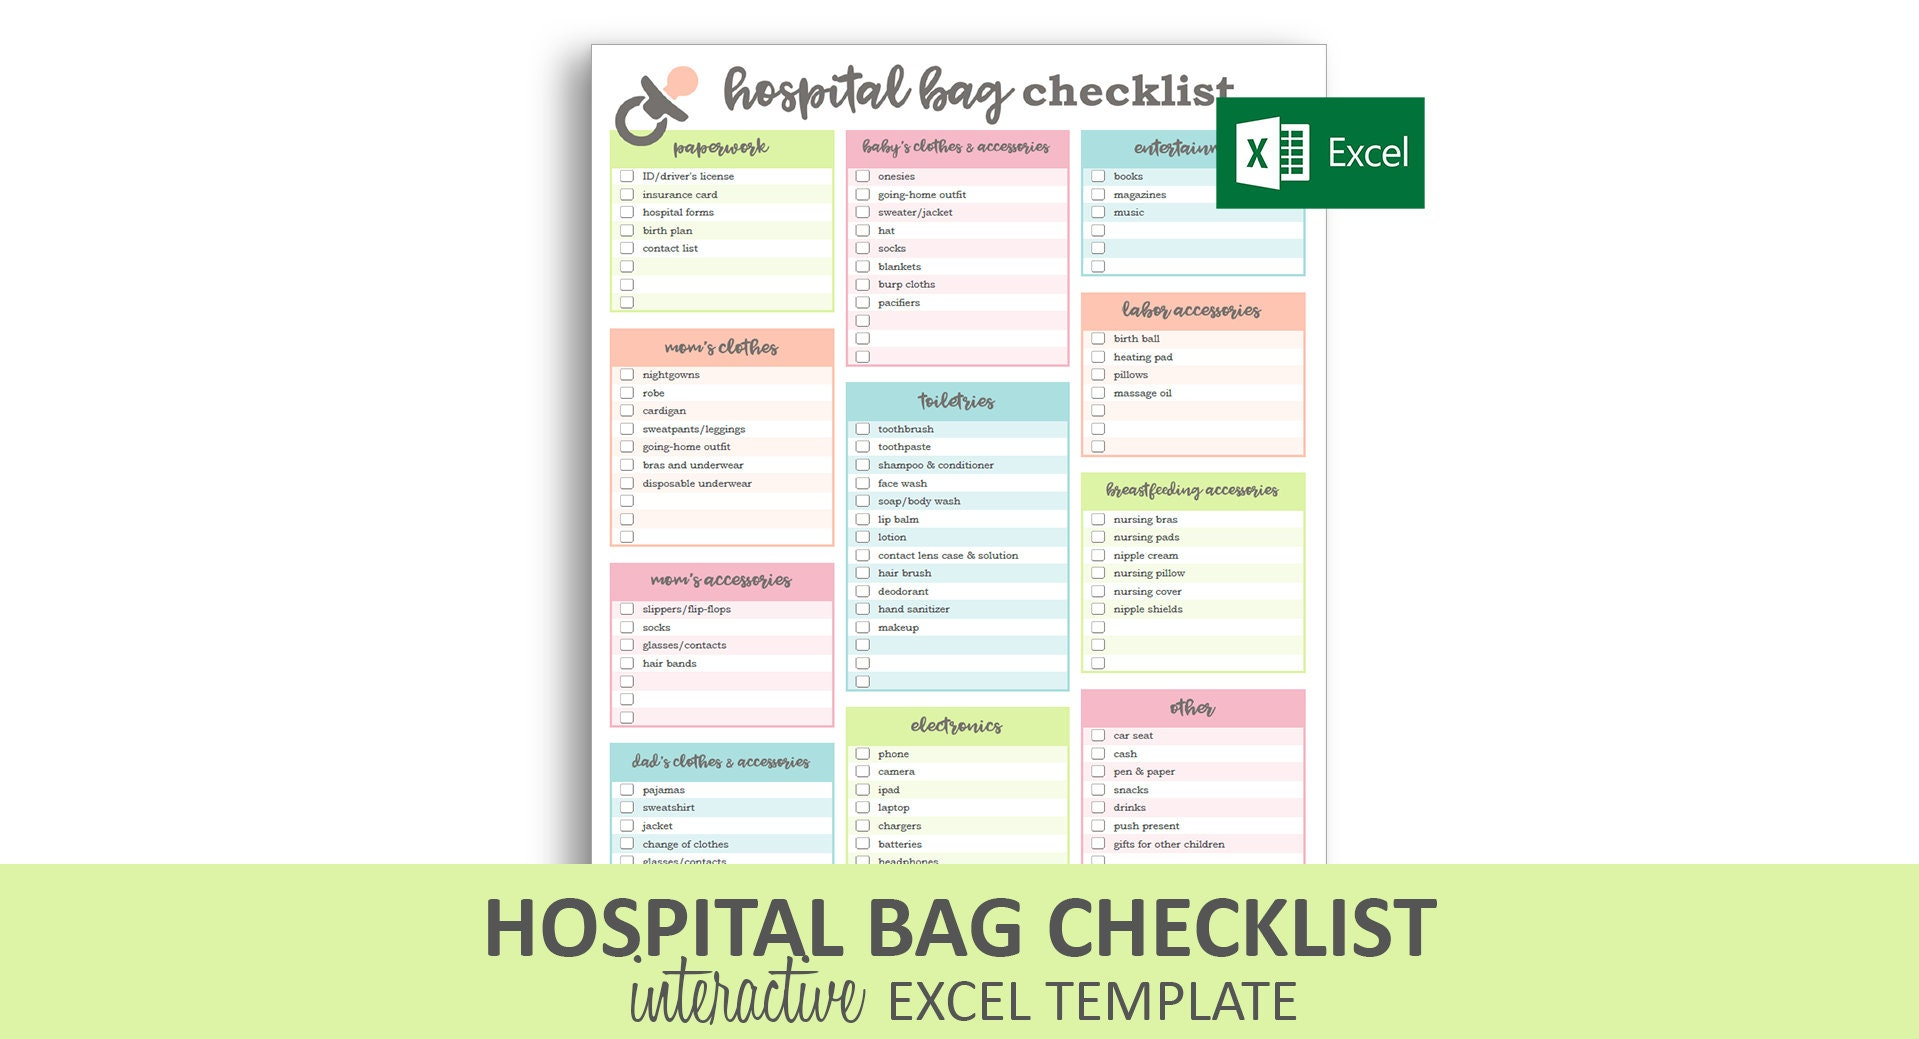 photograph about Printable Hospital Bag Checklist named Clinic Bag Record - Excel Template Editable Checkable Printable Contemporary Kid Packing Record Quick Electronic Down load